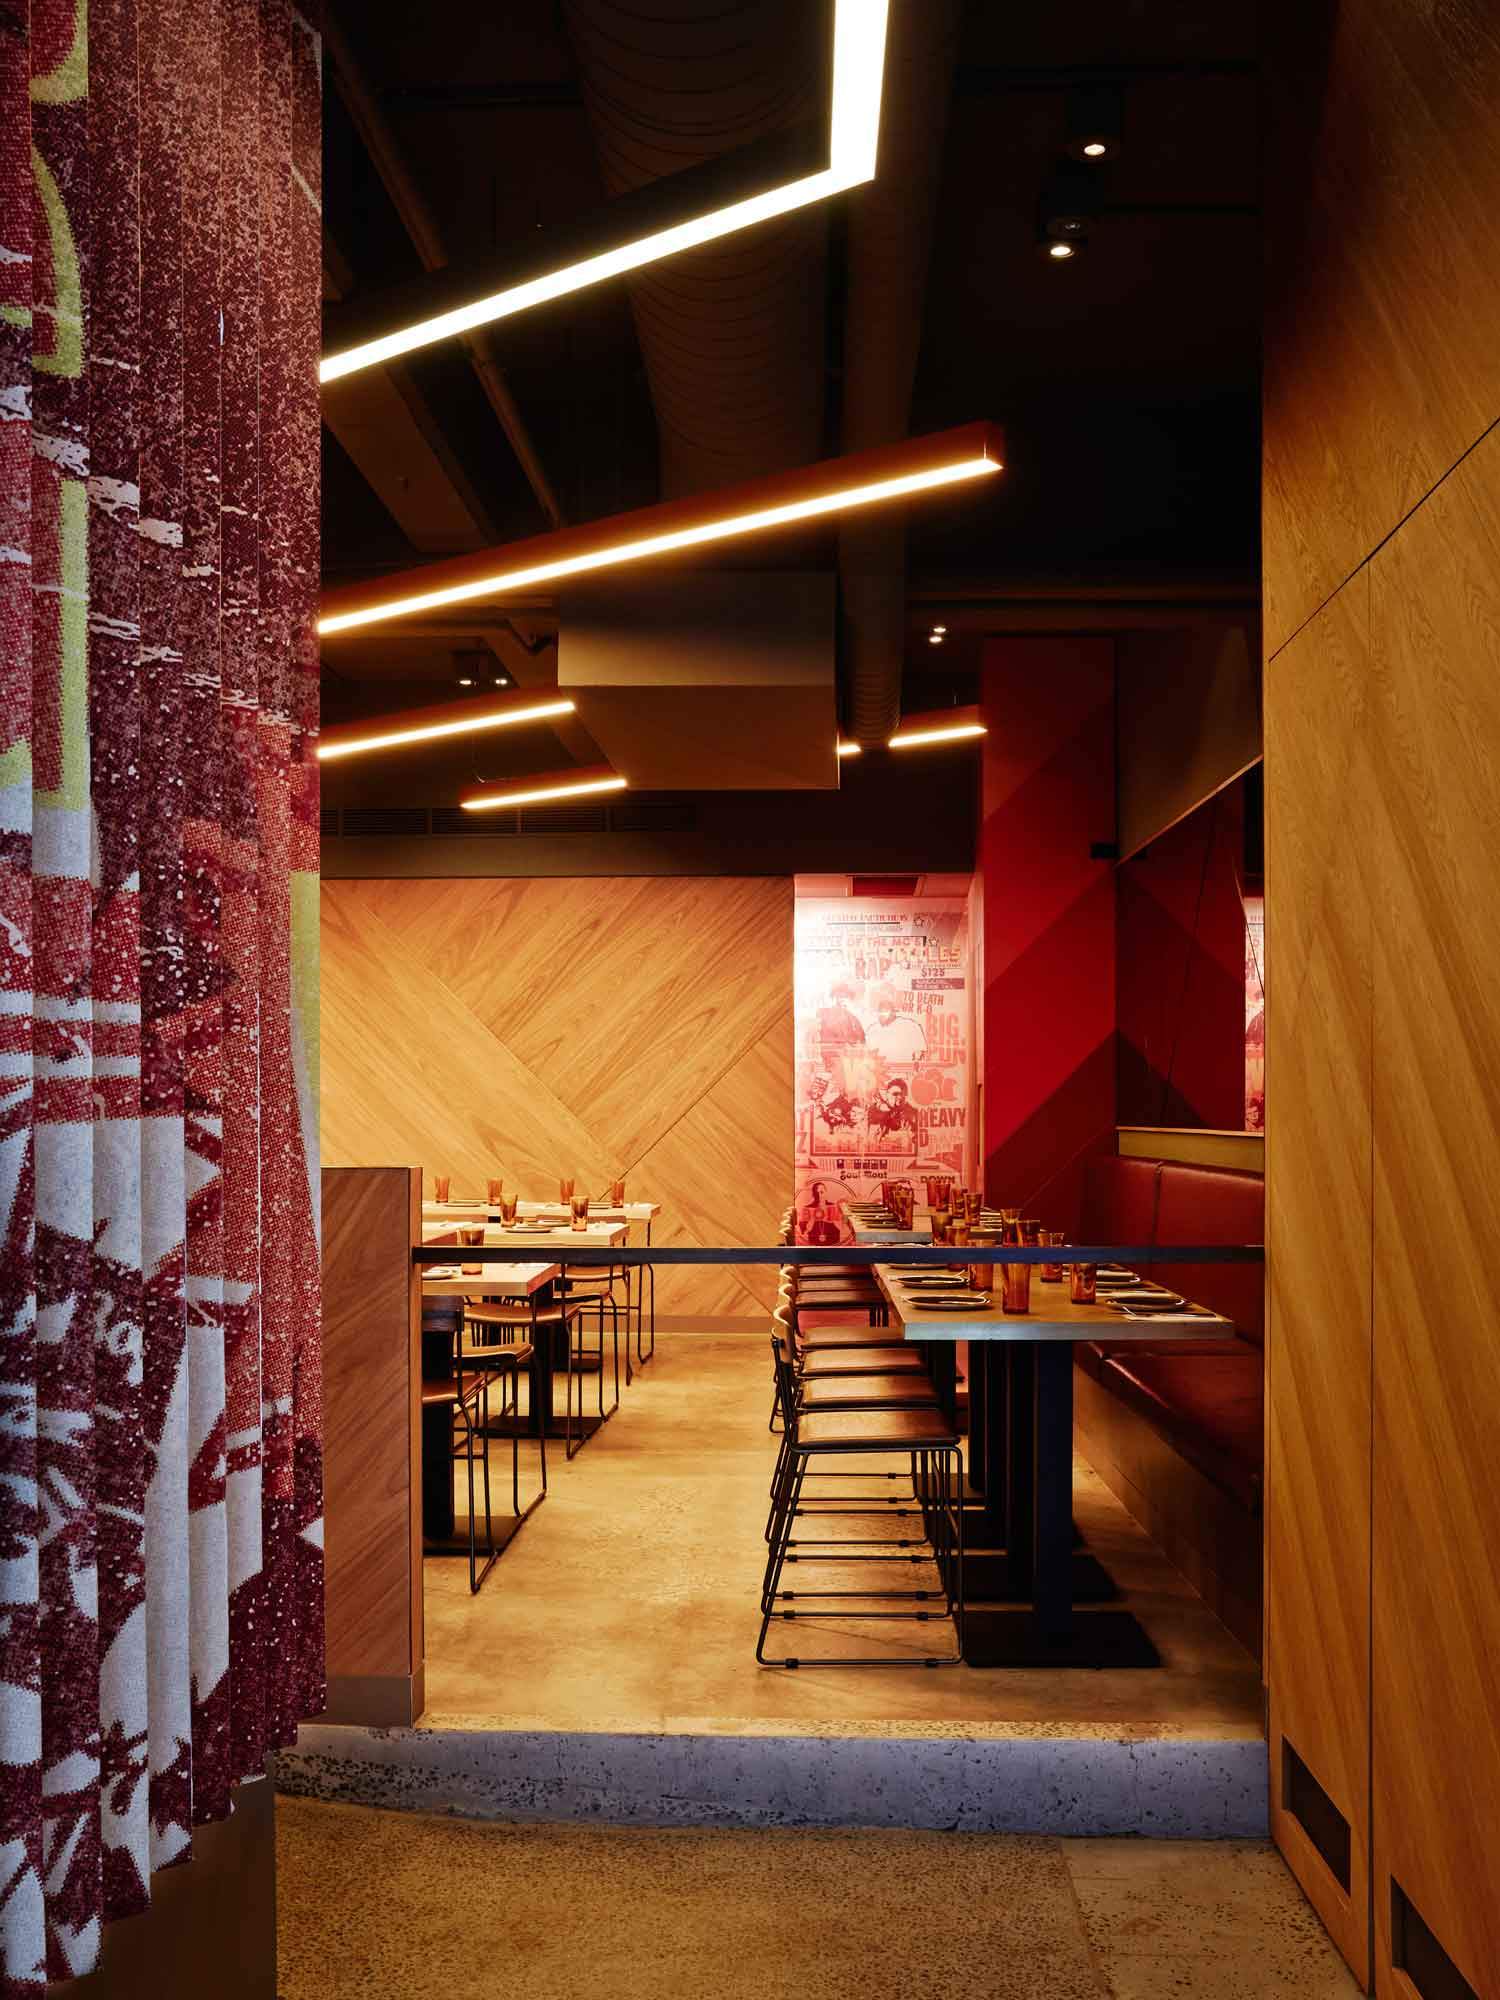 Mr Big Stuff Restaurant by Techne Architecture + Interior Design Studio | Yellowtrace